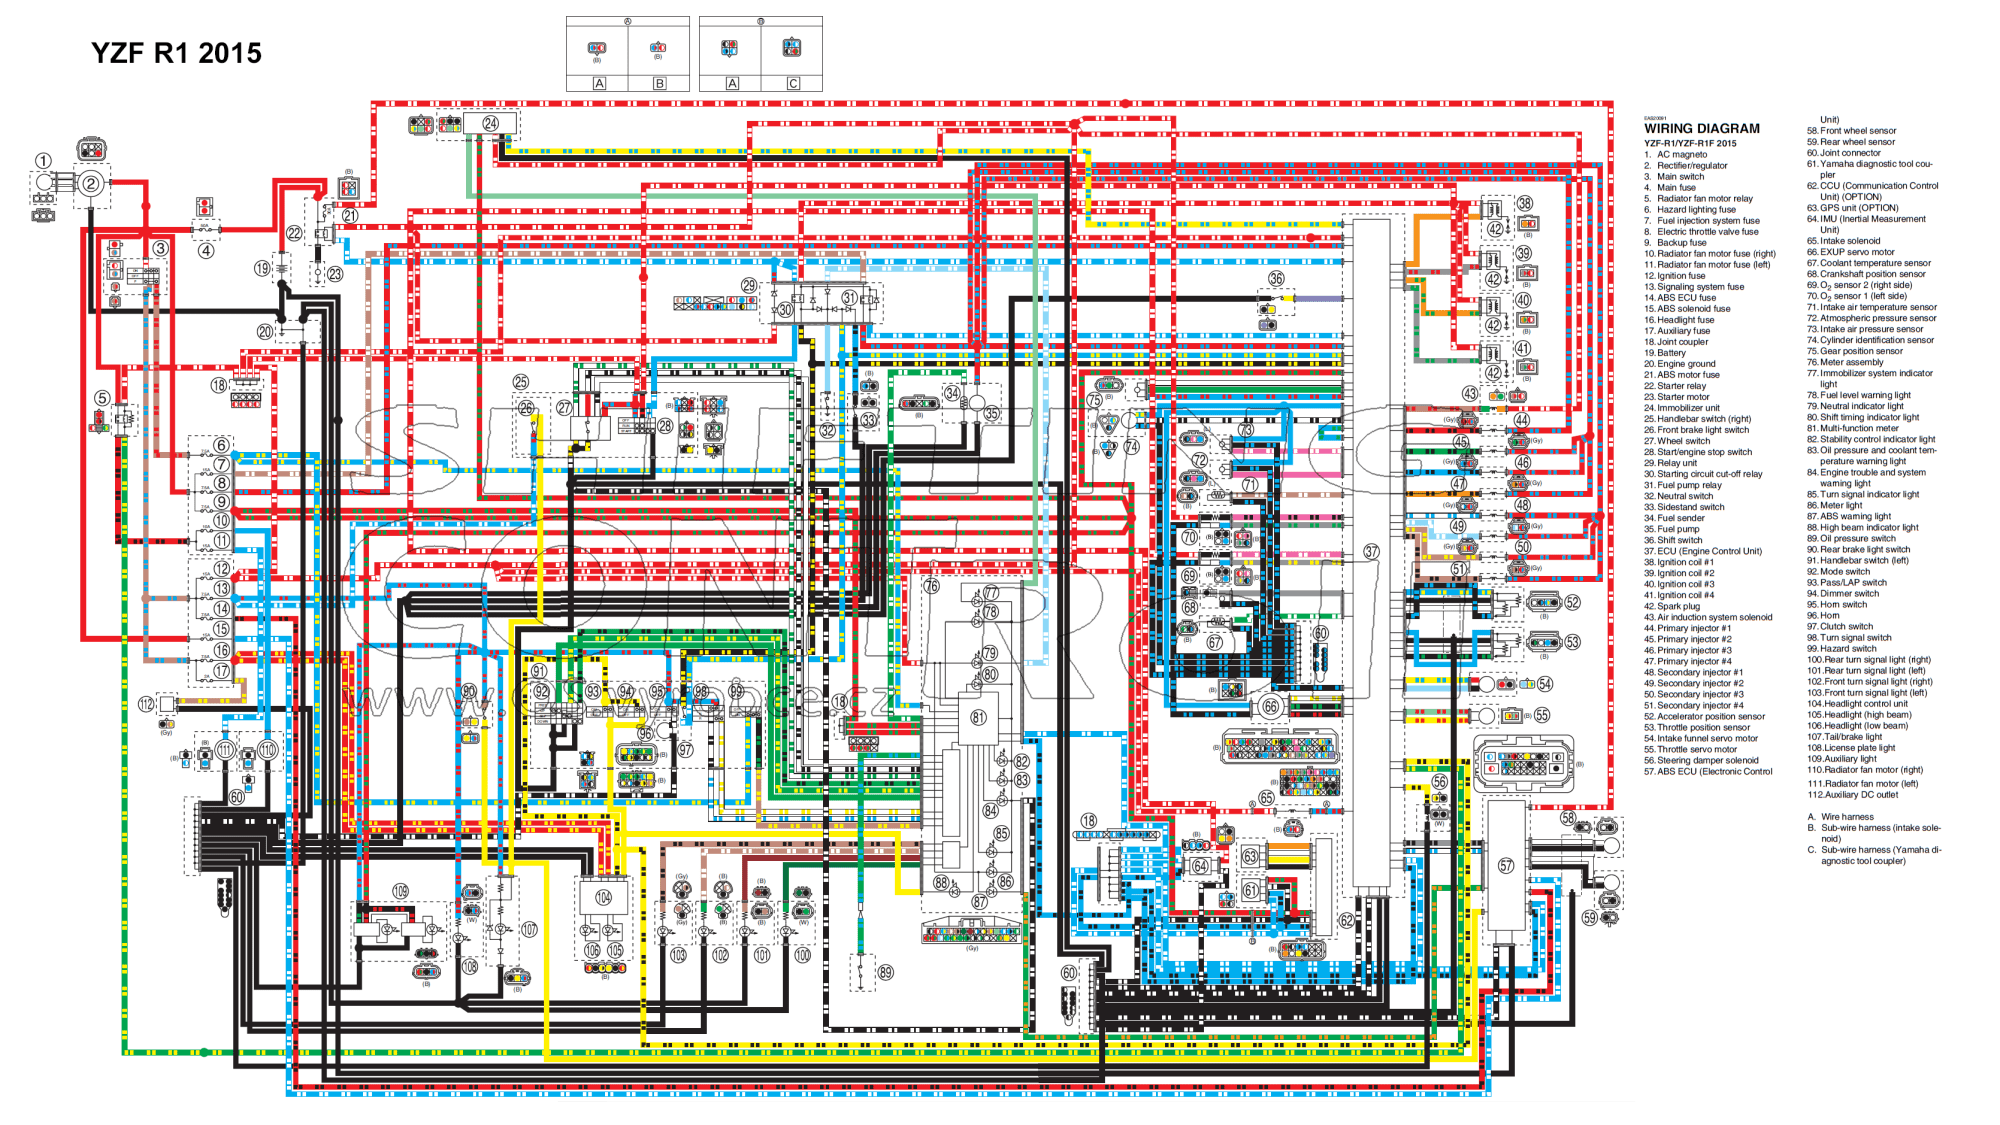 hight resolution of 2007 yamaha r1 wiring diagram simple wiring schema 09 r1 wiring diagram 07 r1 wiring diagram